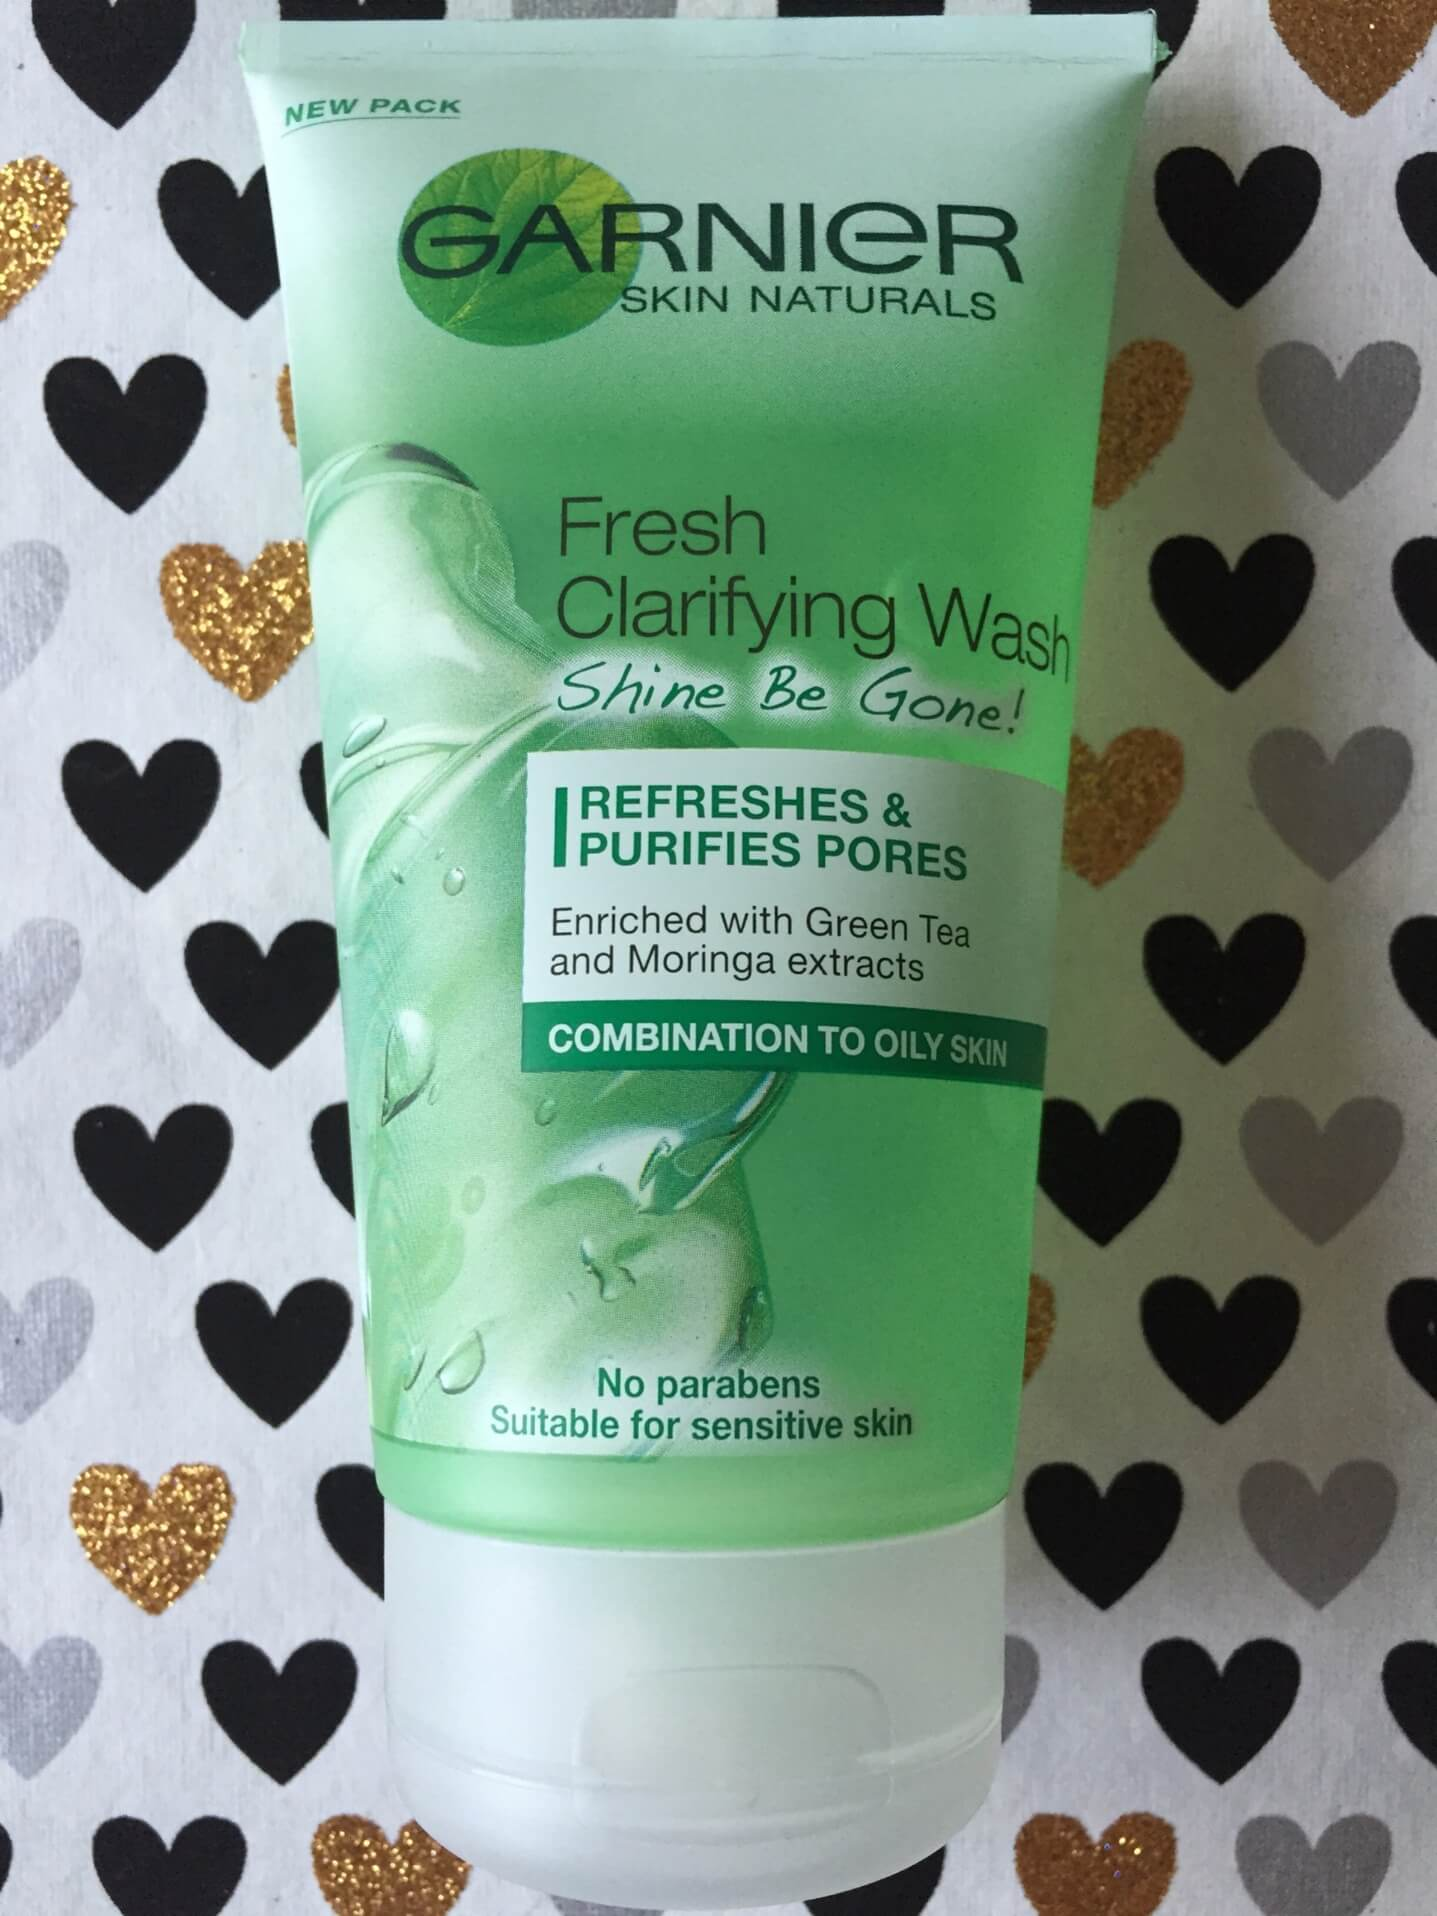 dung-dich-lam-sach-garnier-fresh-clarifying-wash-shine-be-gone-02